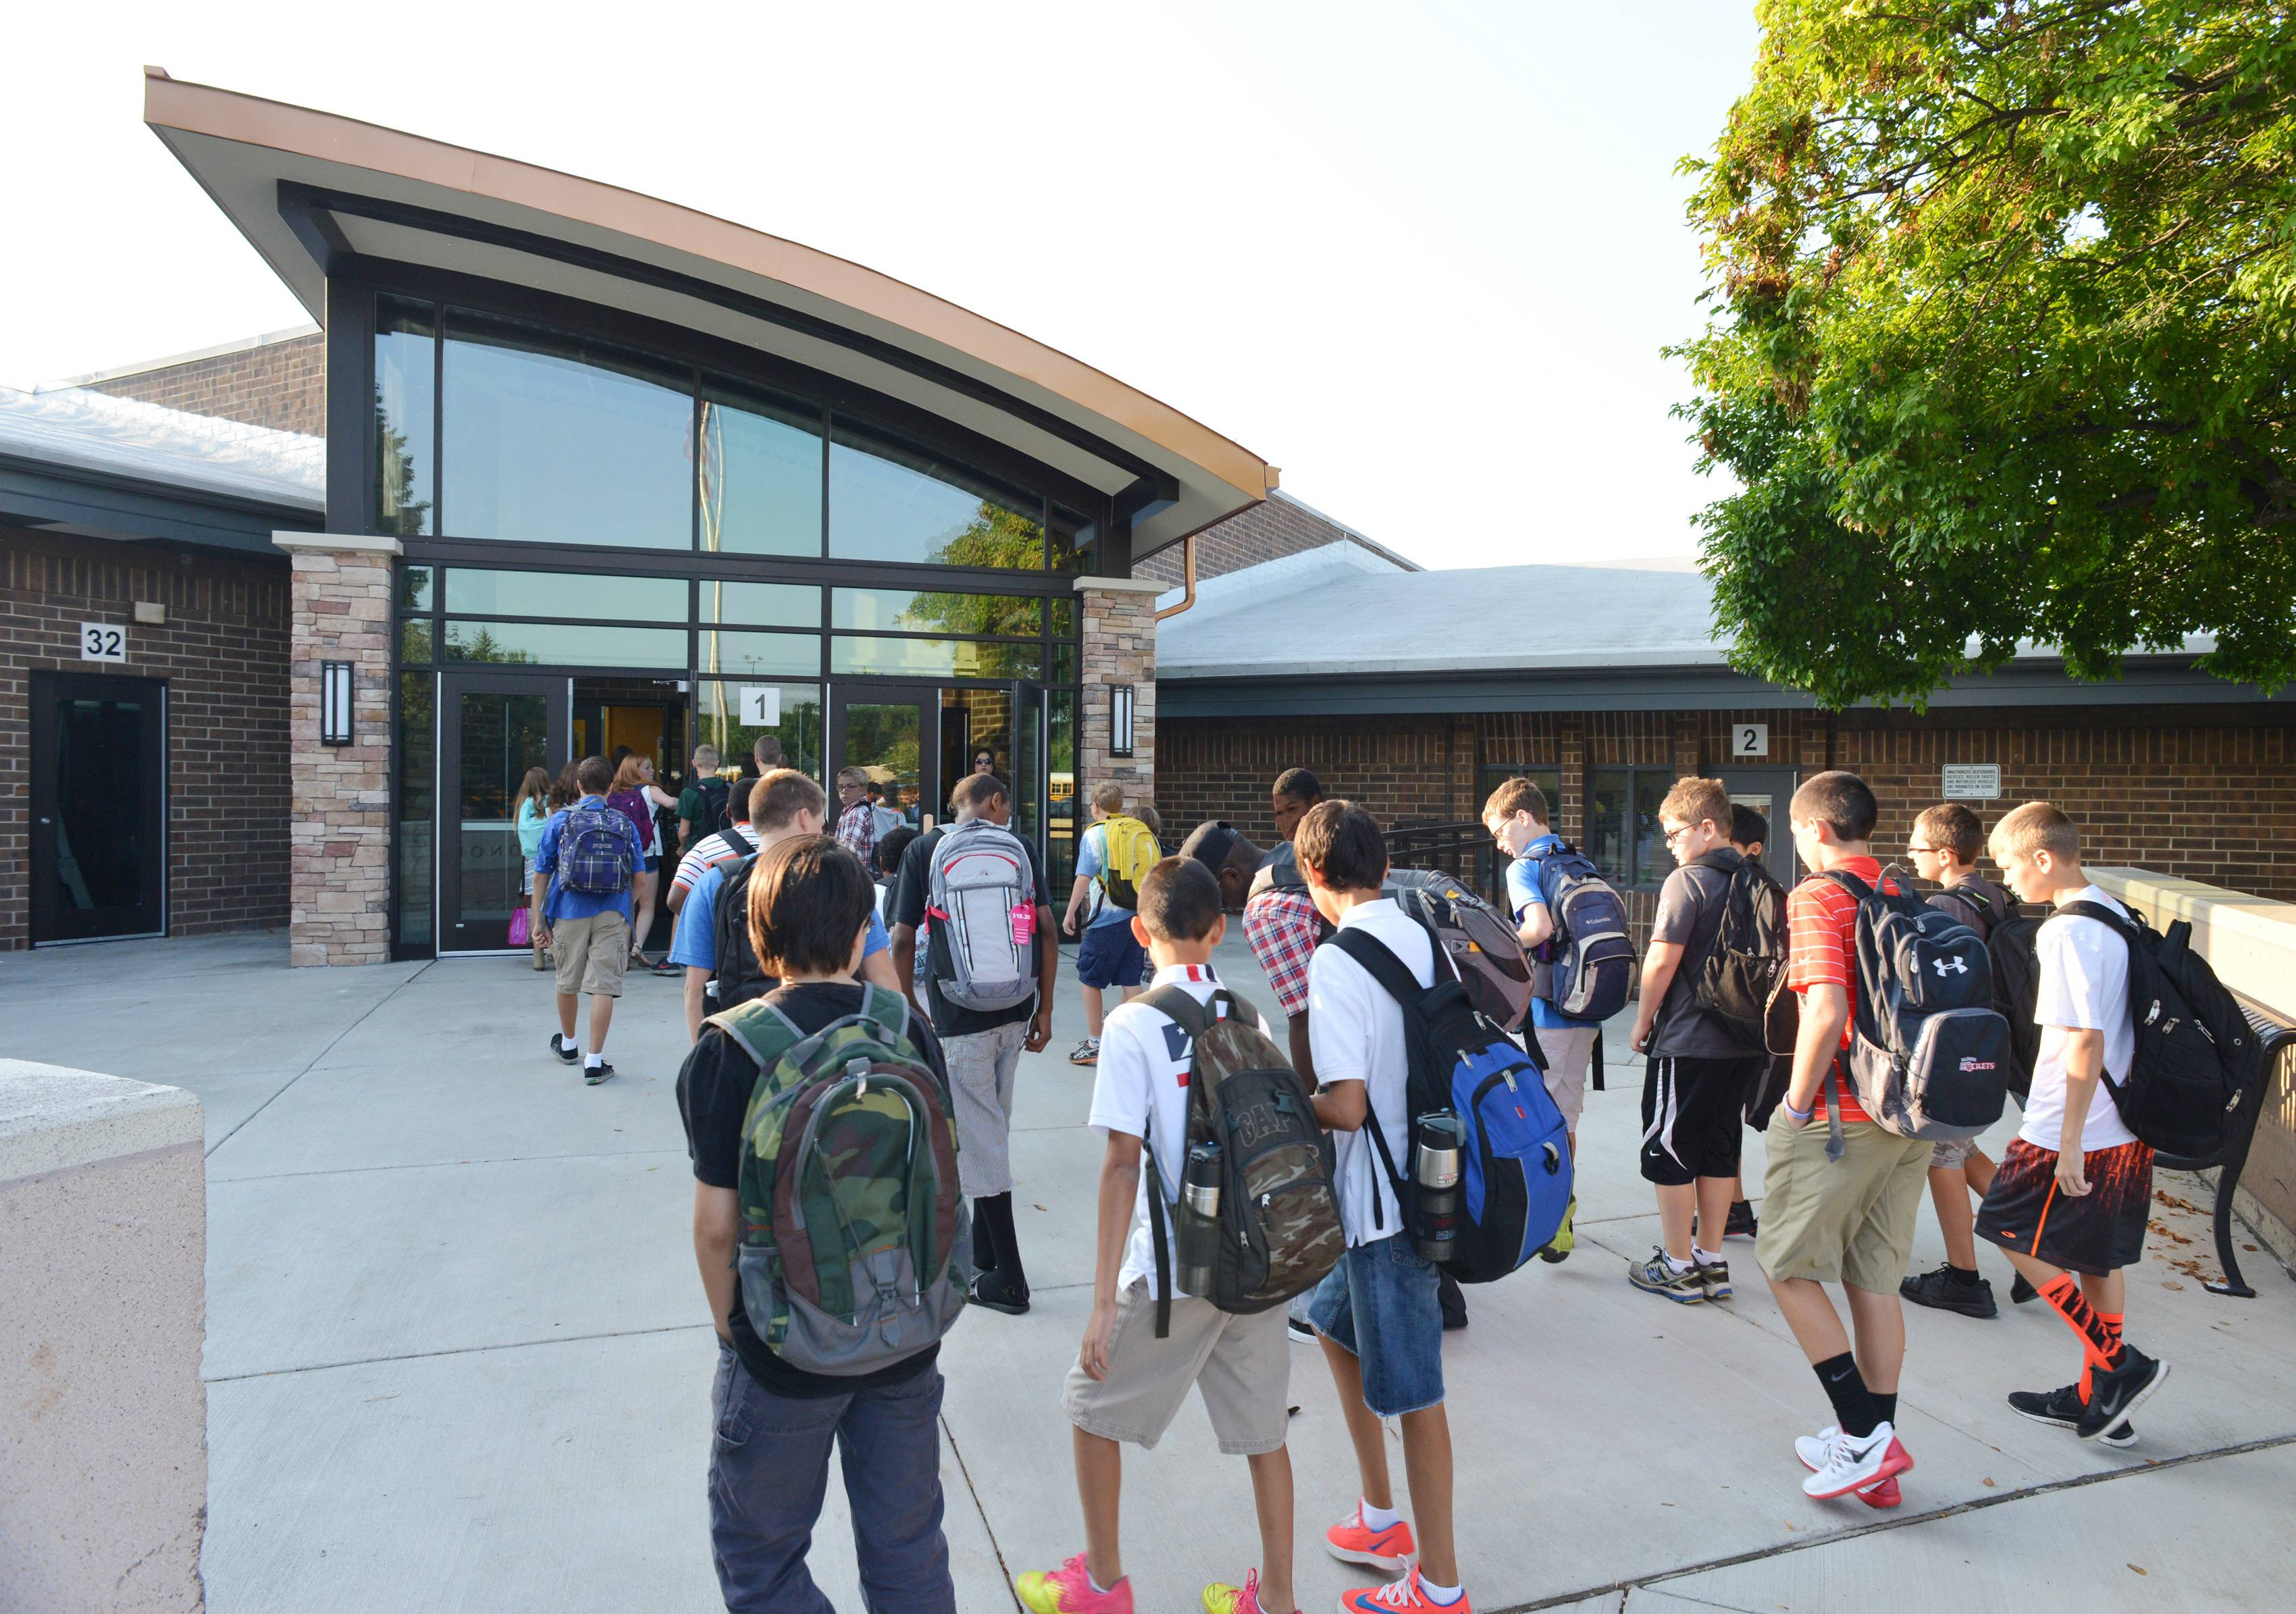 Students converge on Madison Junior High School in Naperville for the first day of classes Wednesday in Naperville Unit District 203. The school got a $769,000 front entrance and vestibule this summer to increase safety.